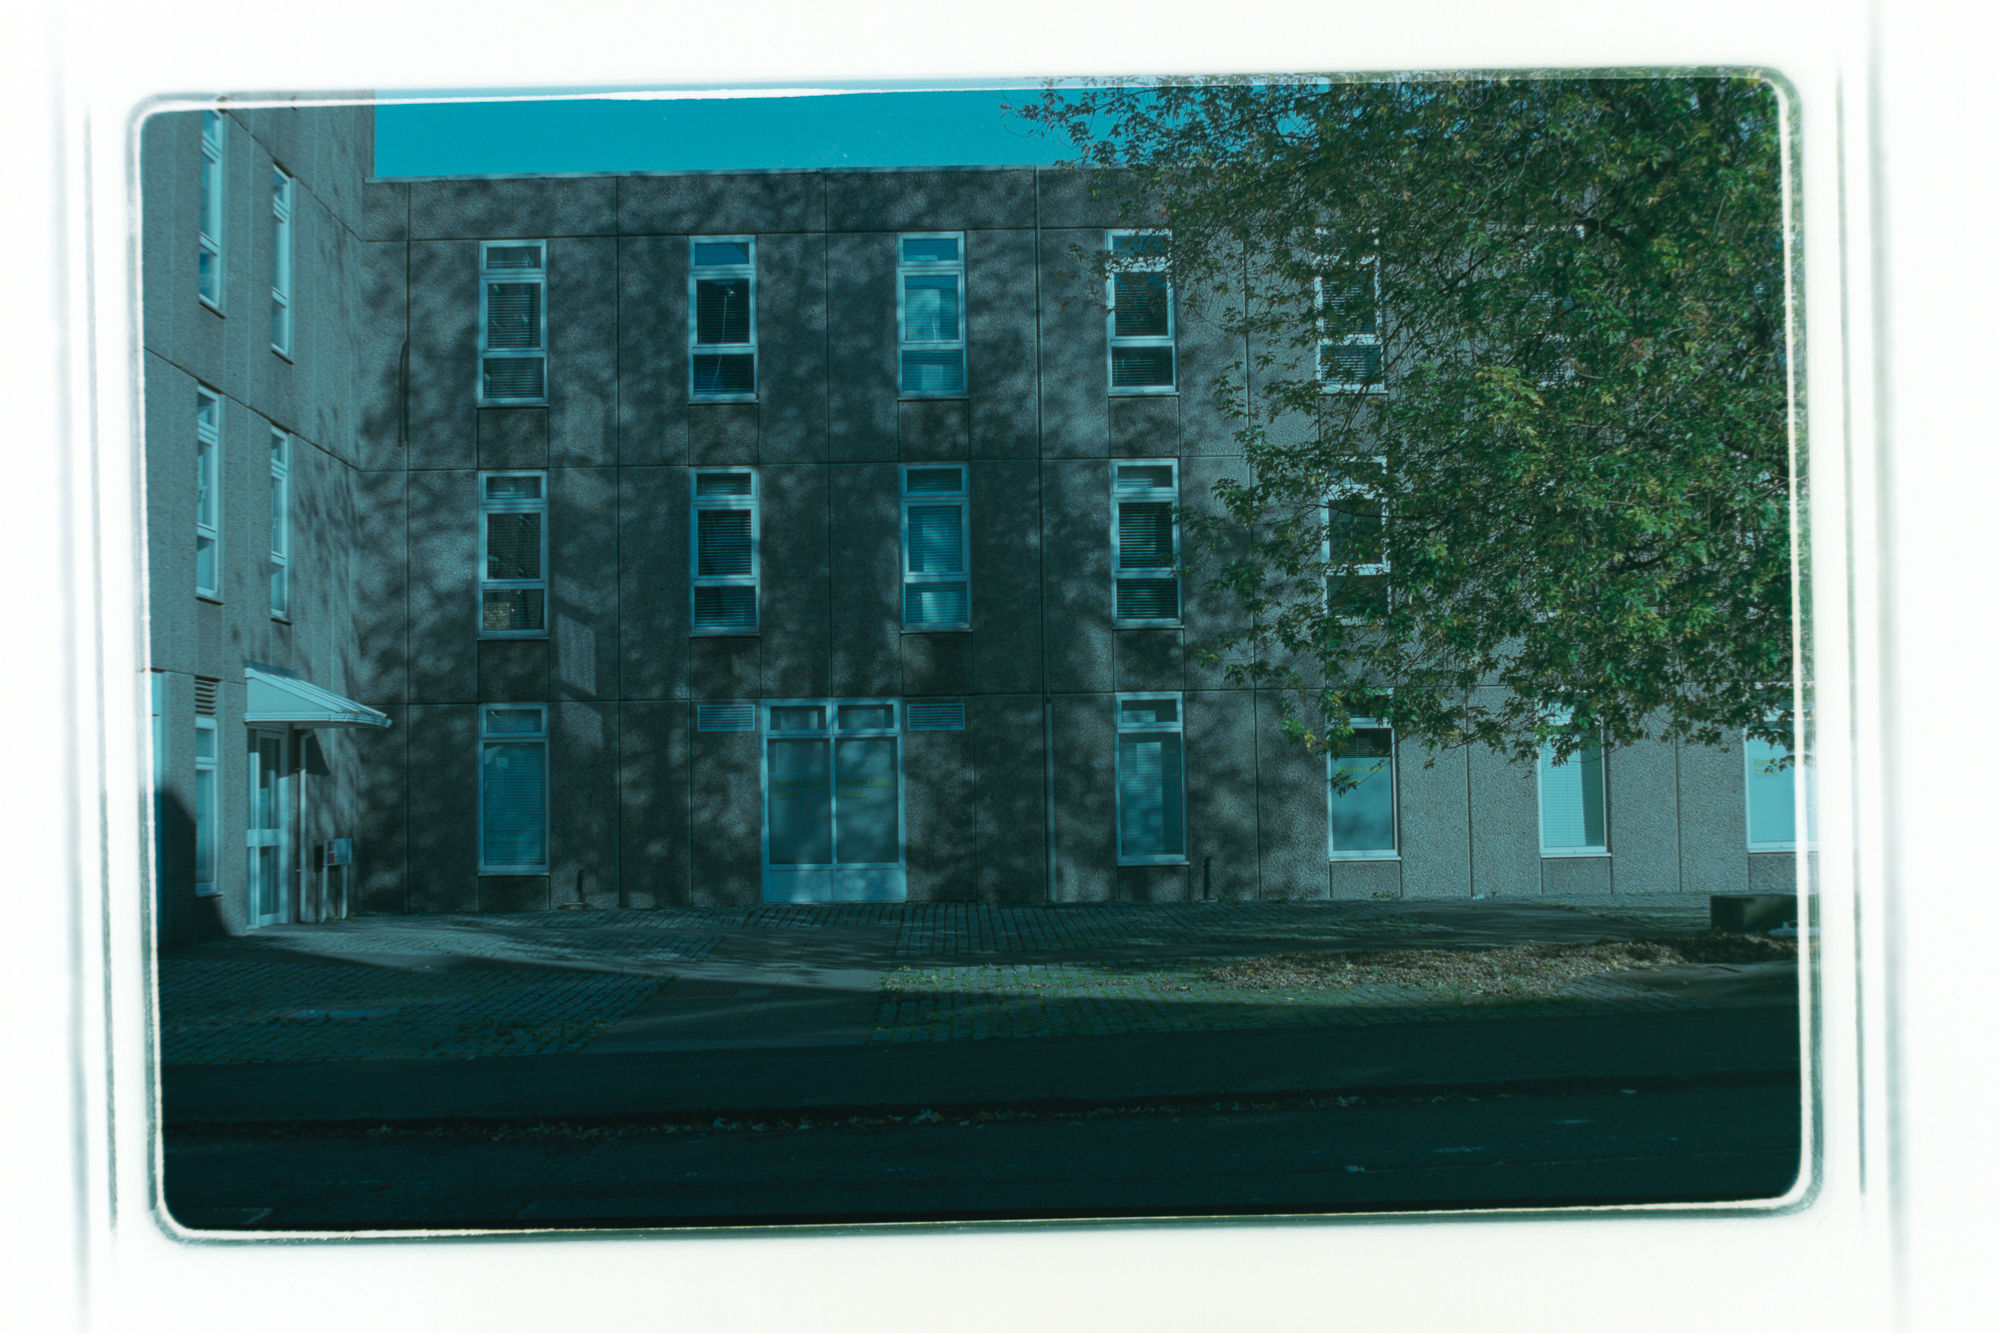 The digital negative inverted to create a positive image which has a strong cyan colour cast.